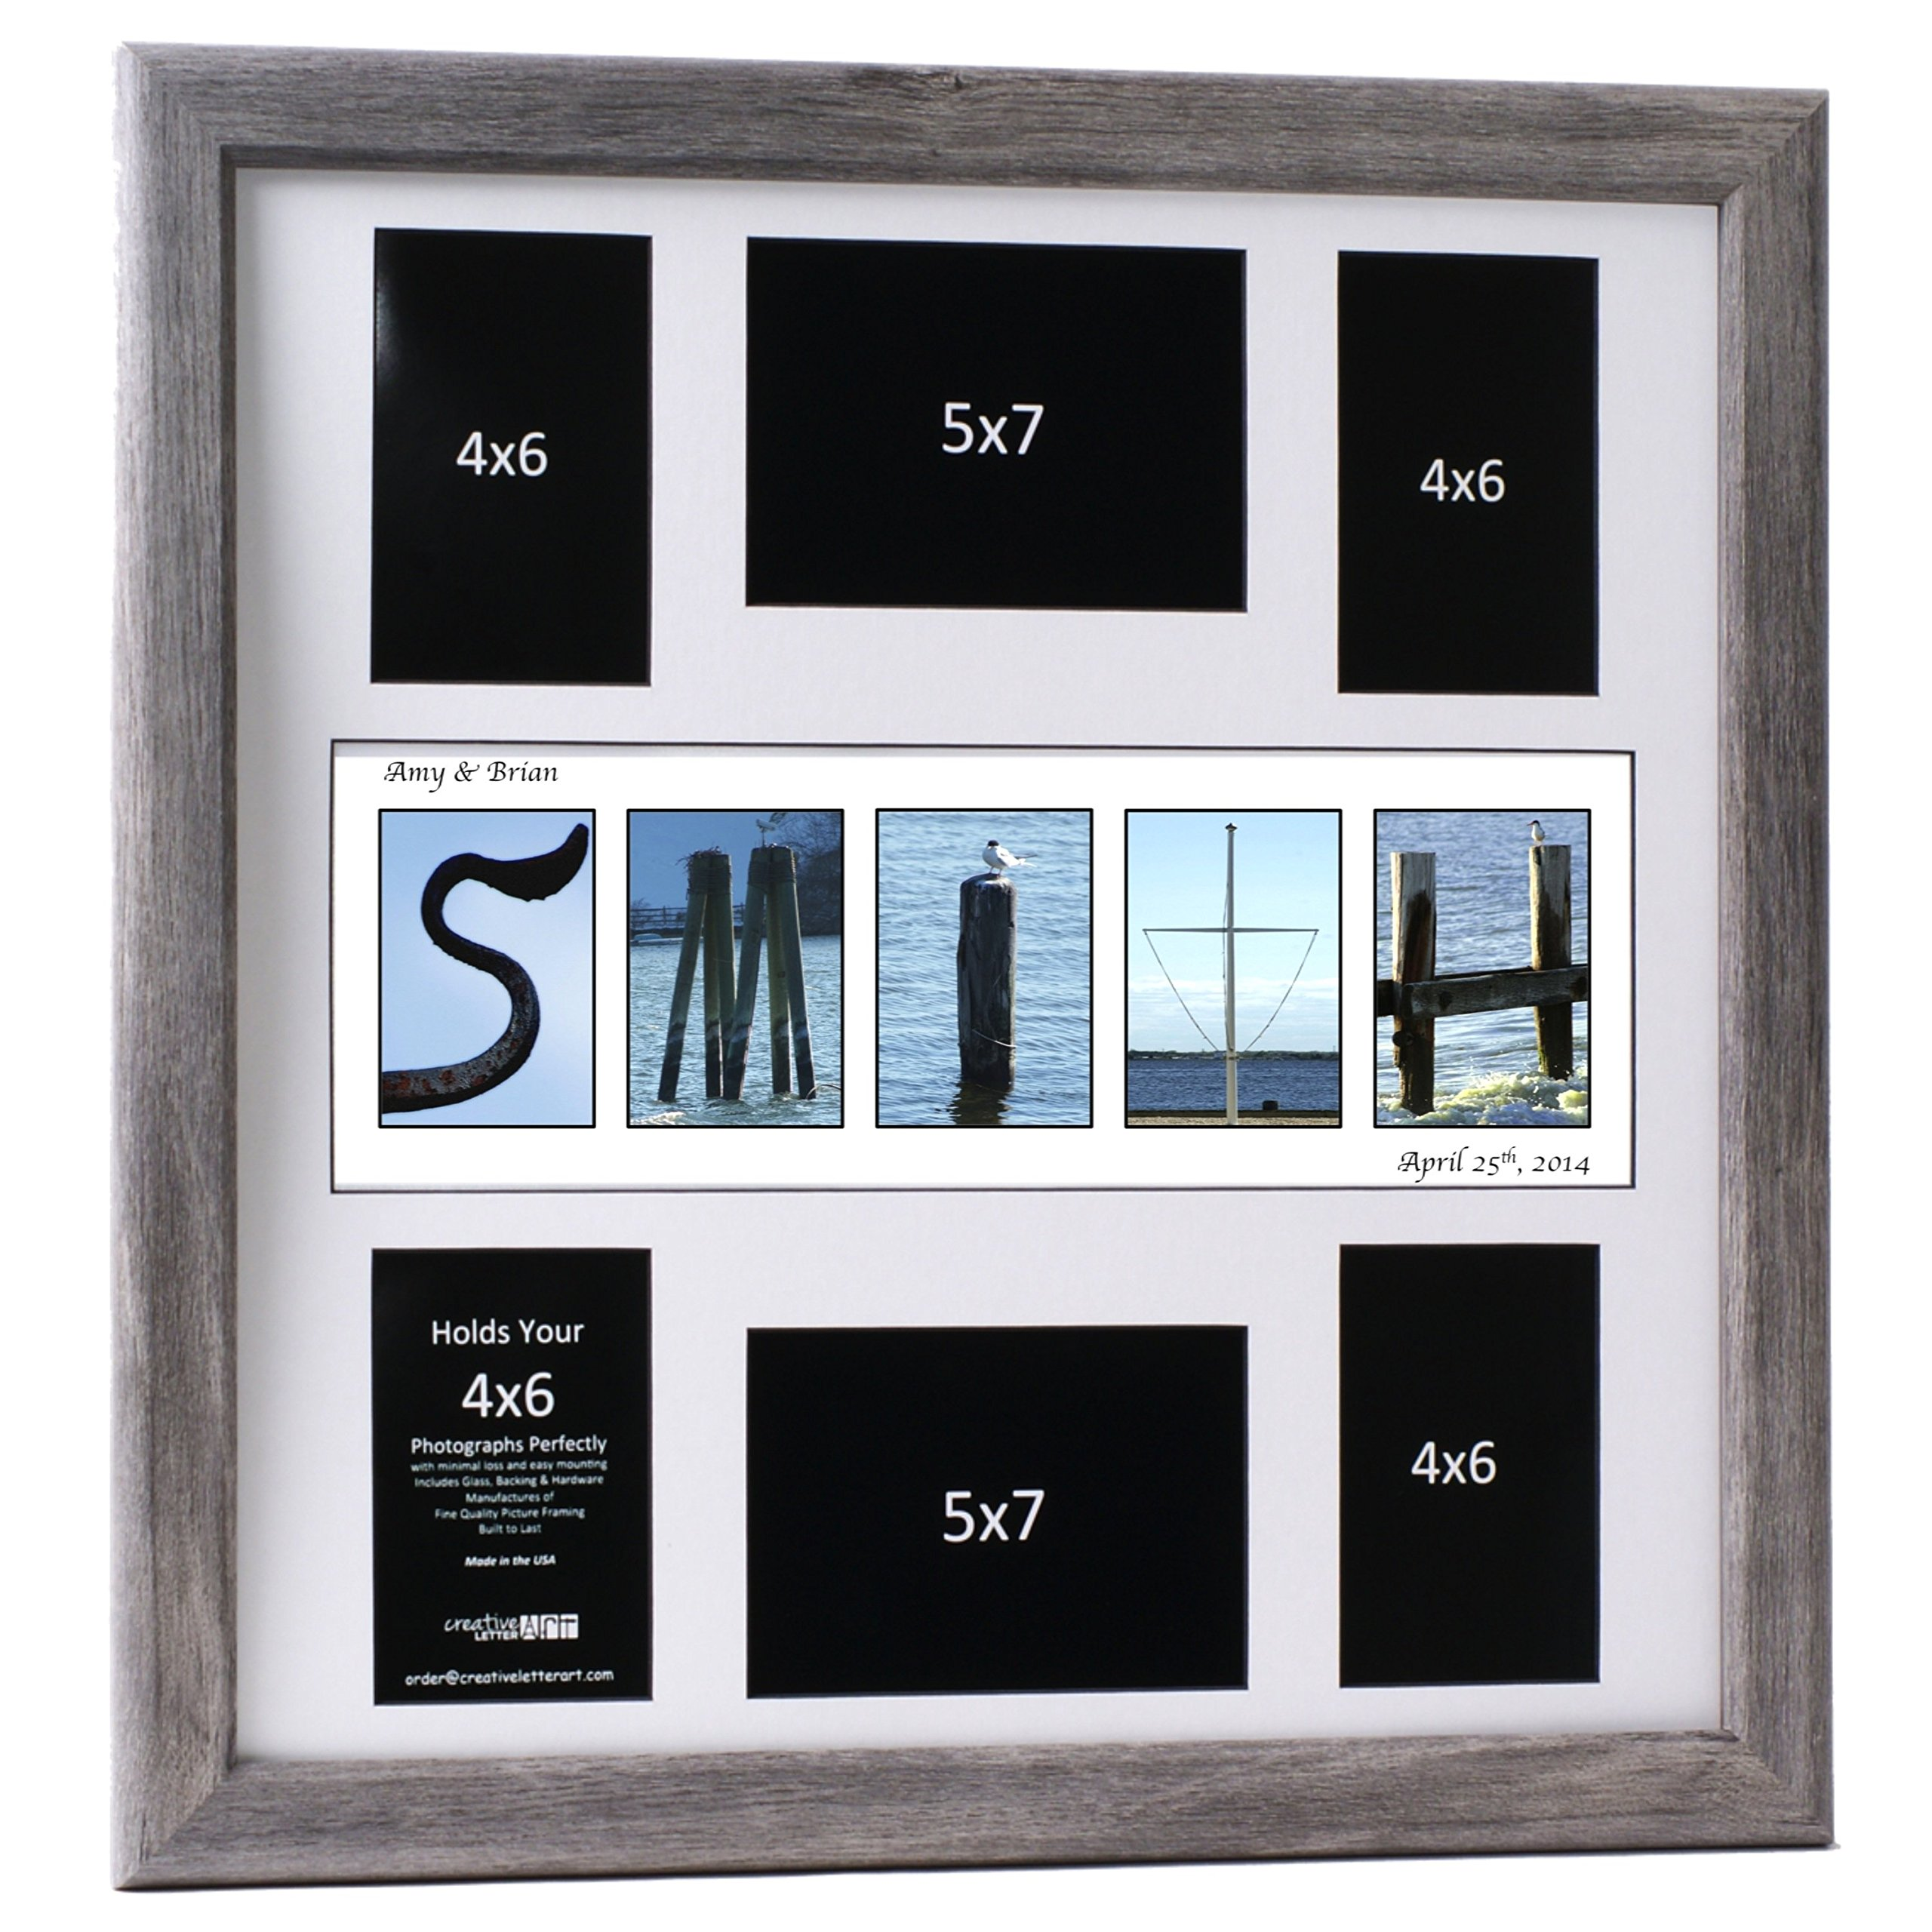 Creative Letter Art� - Personalized 20 by 20 inch Framed Beach and Nautical Related Name Collage which holds 4x6 and 5x7 inch Photographs with Wedding Registry Mat by Creative Letter Art